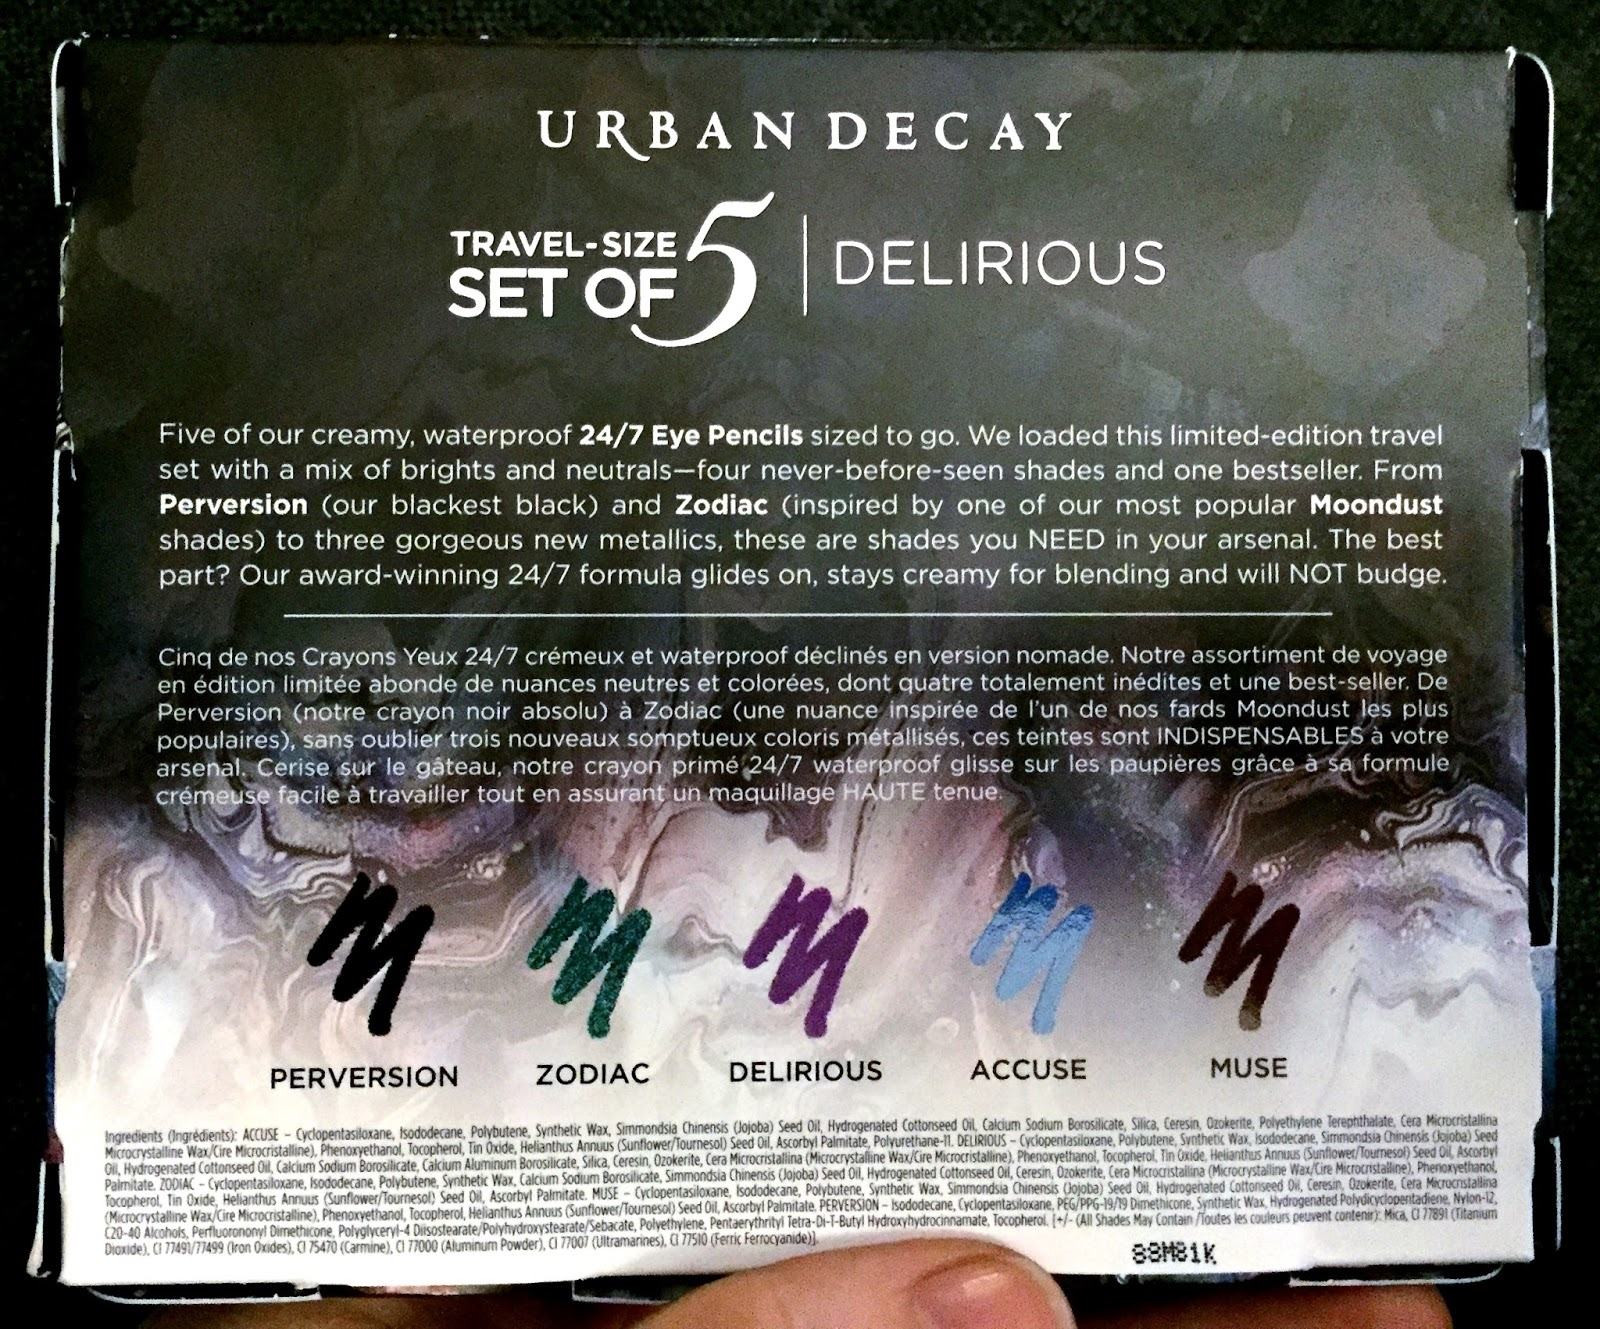 Urban Decay Delirious Eyeliners